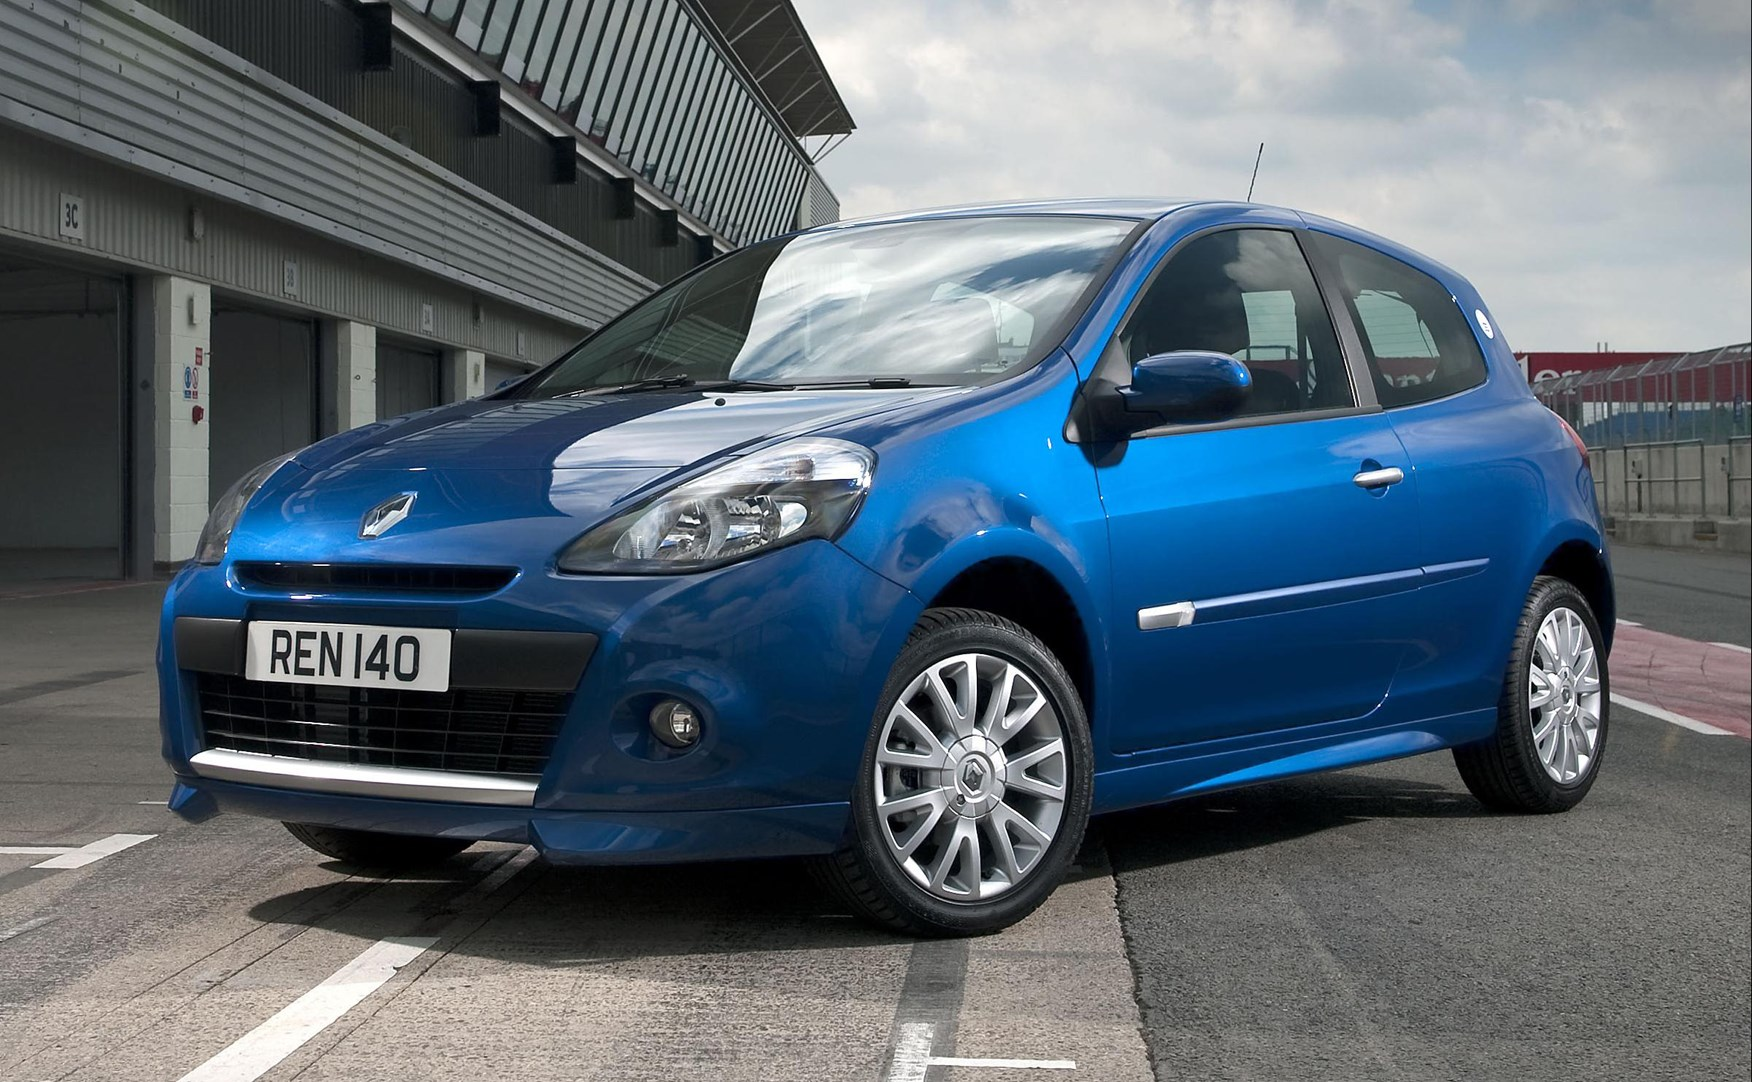 Used Renault Clio Hatchback 2005 2012 Review Parkers